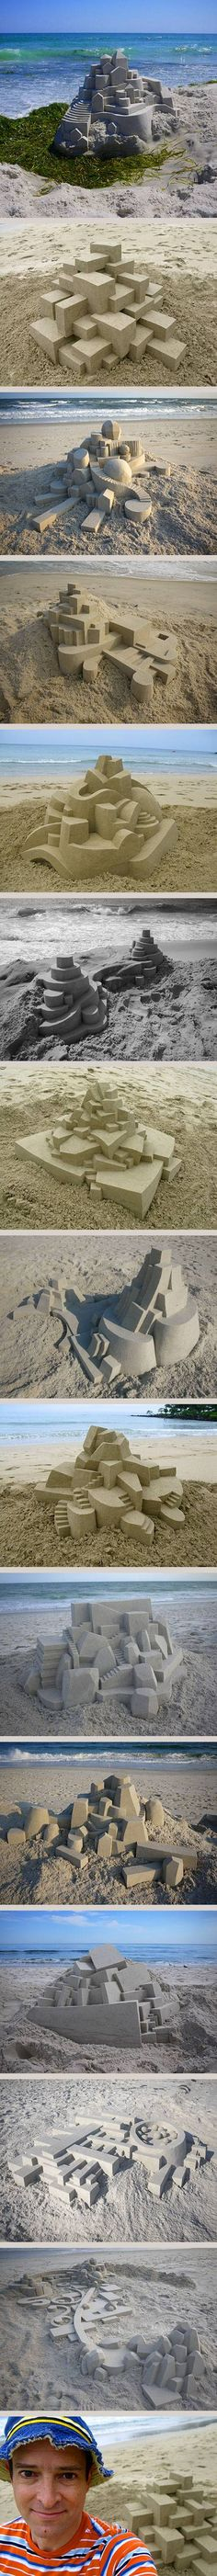 Using a variety of 3D geometric shapes such as prisms, pyramids, cylinders, spheres and cones; artist Calvin Seibert creates wonderful sand sculptures that are not quite 'castles' but much more than just randomly placed building blocks.